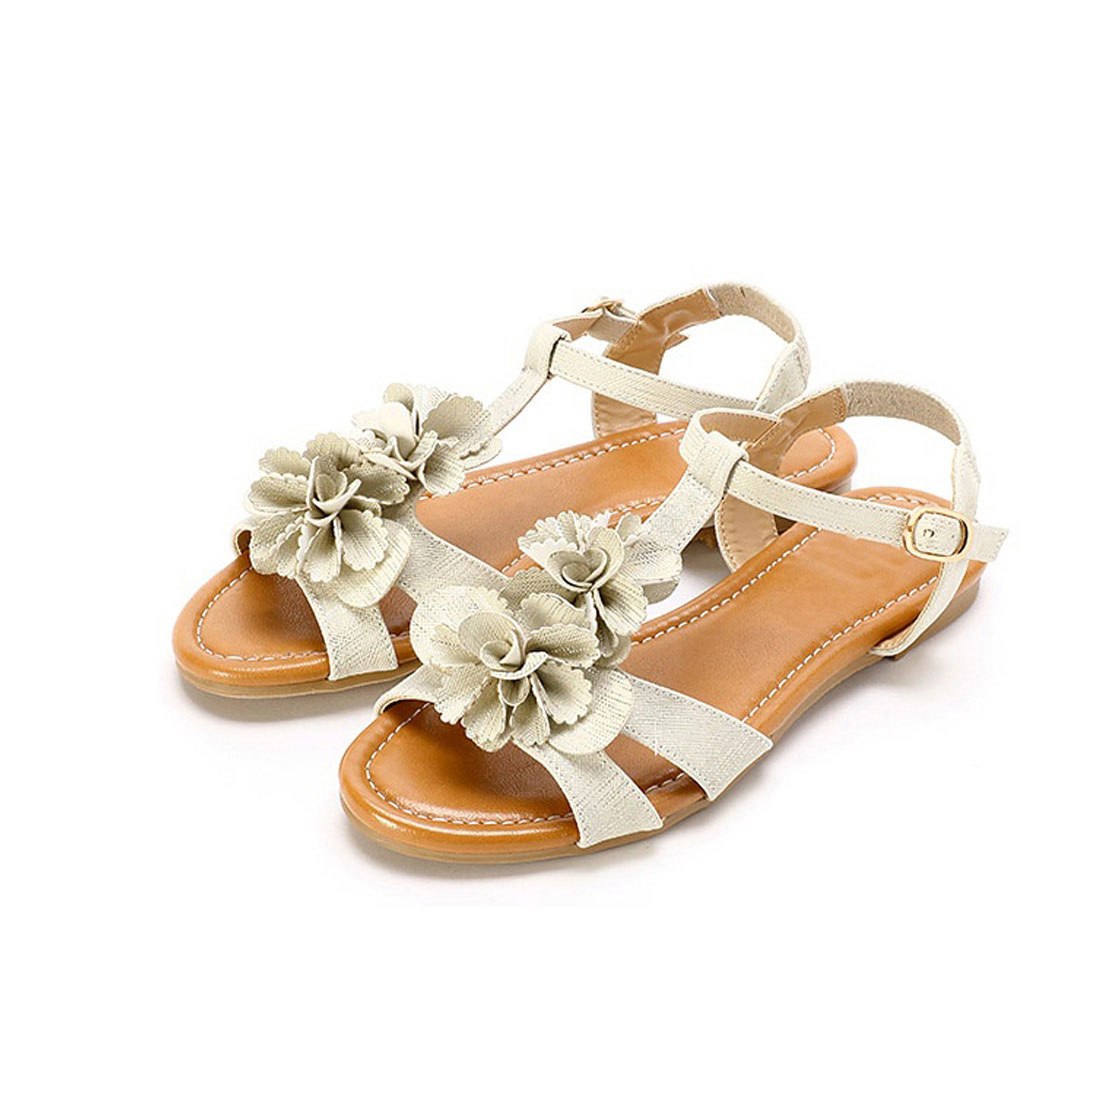 Latest ladies leather with flower buckle strap women flat sandal shoes YH1156